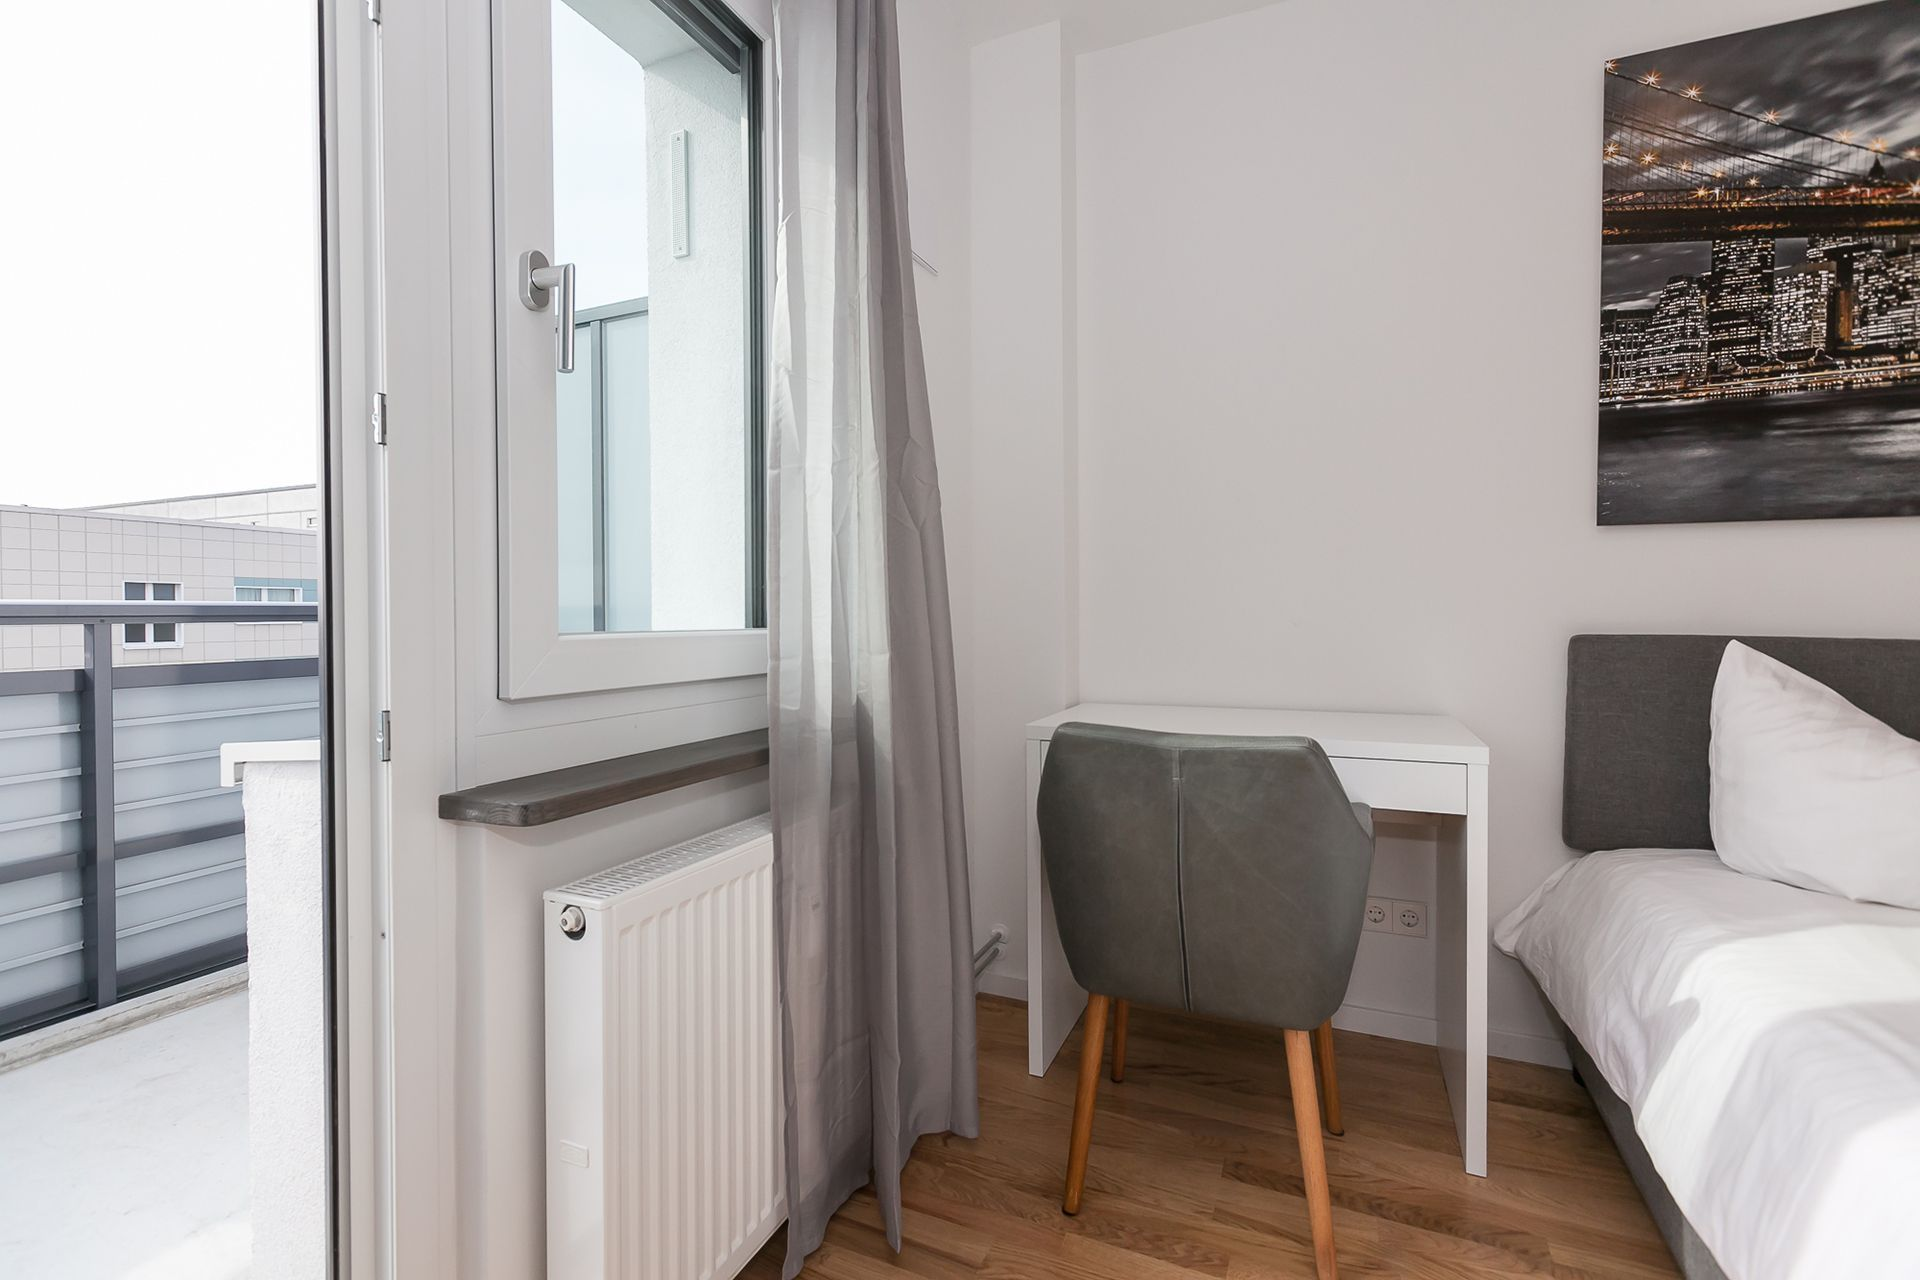 1 Bedroom - Small apartment to rent in Berlin KOEP-KOEP-0712-0